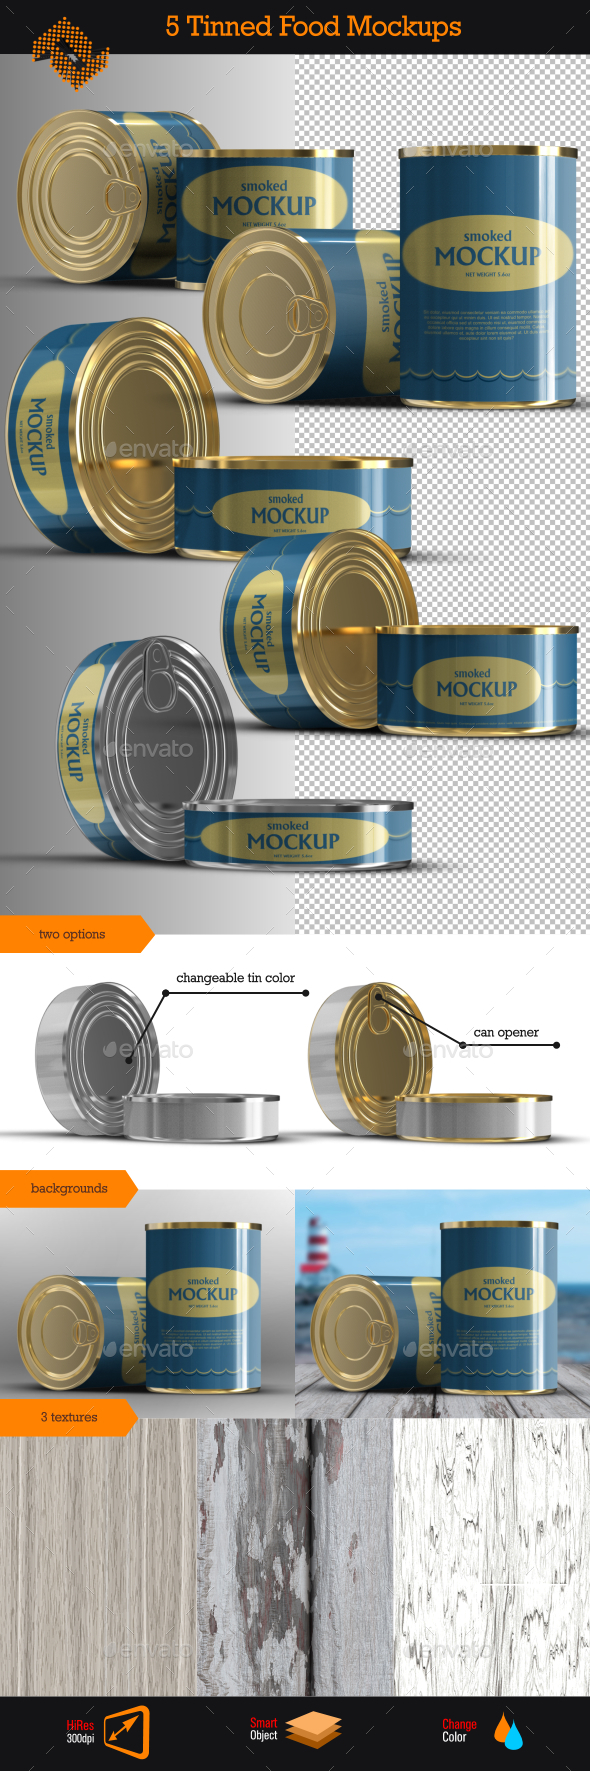 Canned \ Tinned Food Mockups - Food and Drink Packaging